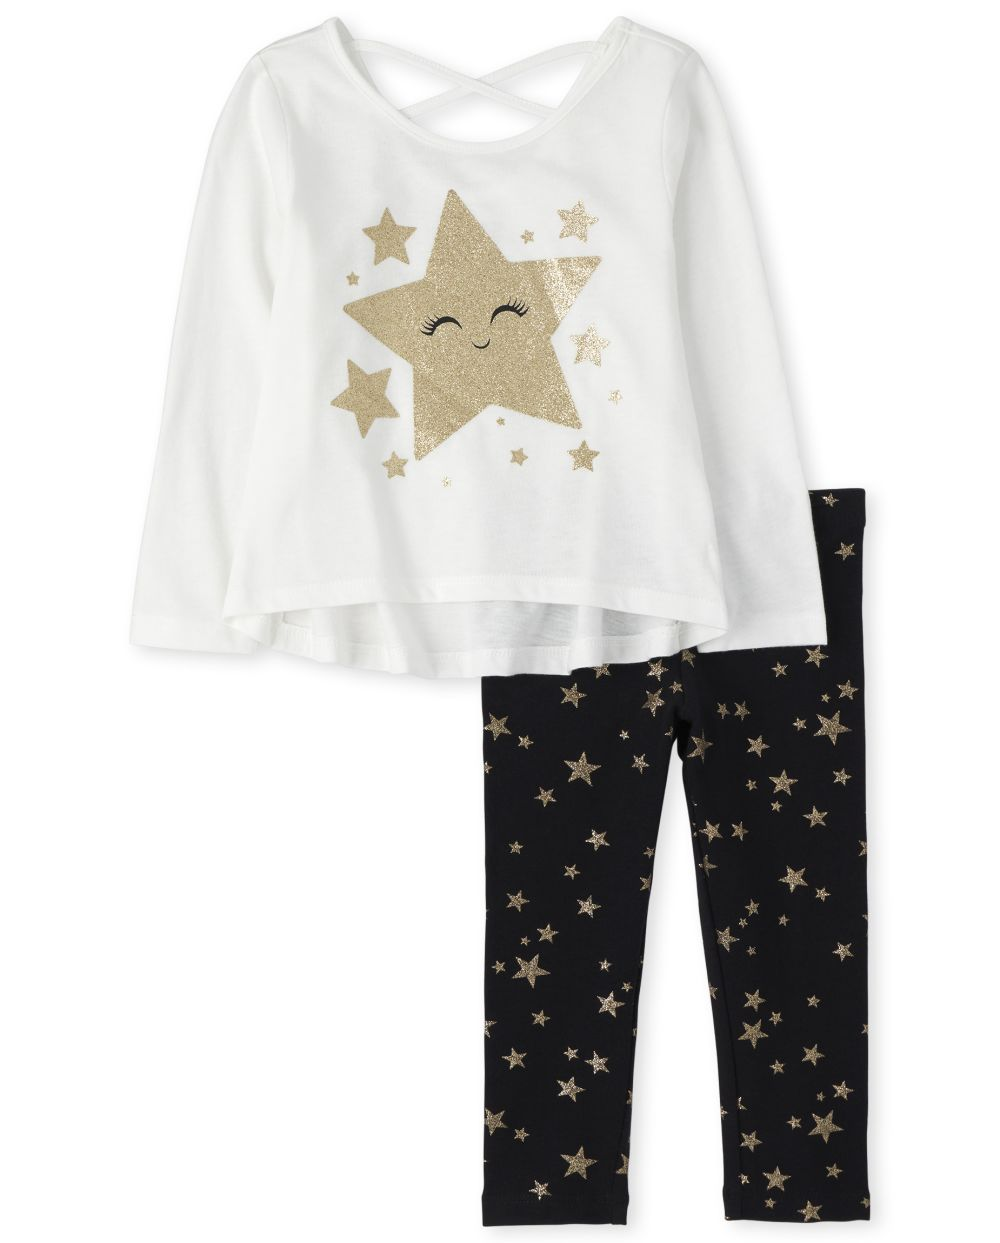 Toddler Girls Glitter Star Outfit Set